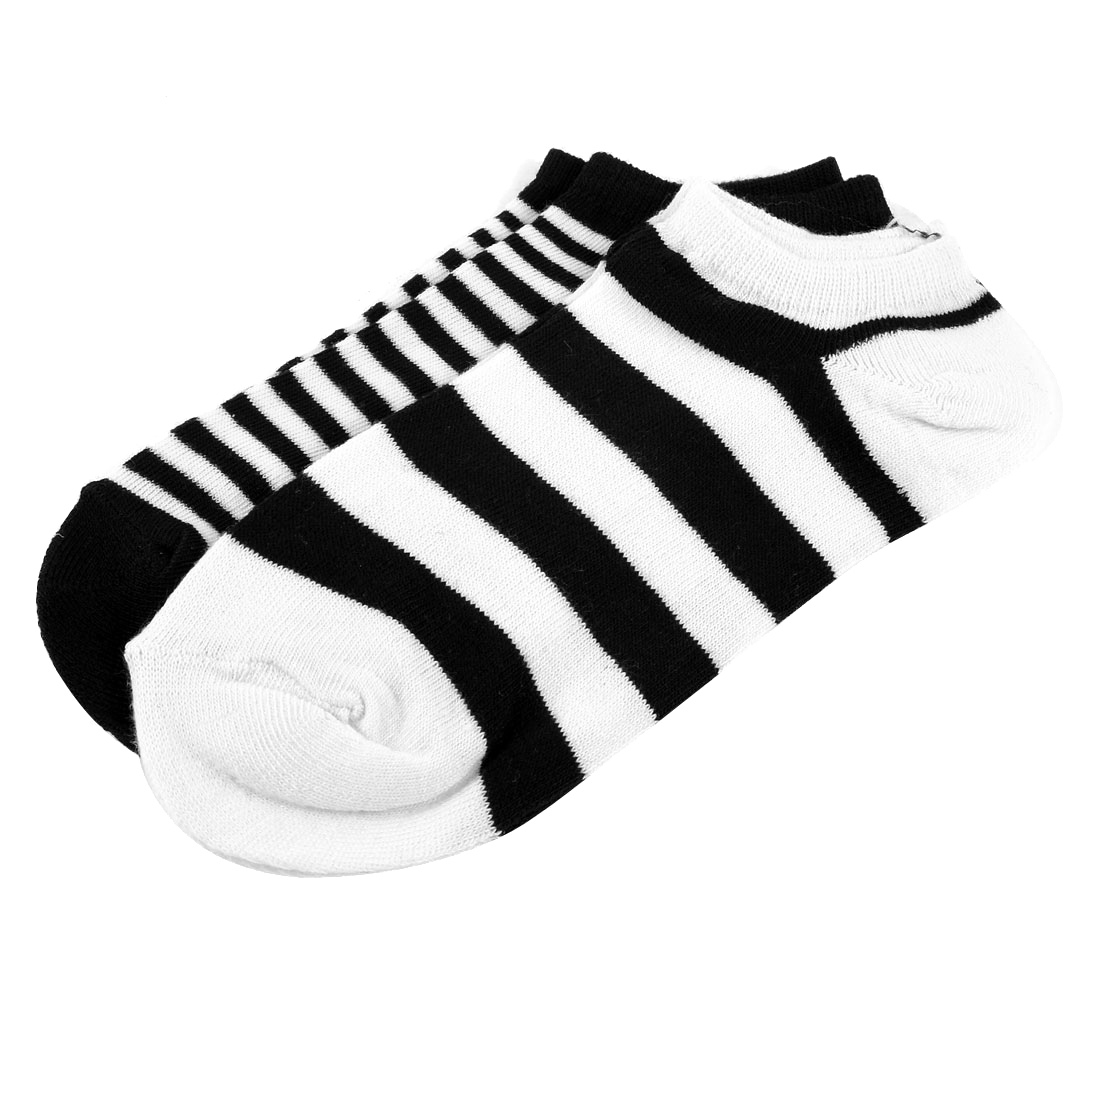 Girls Spring Autumn Elastic Low Cut Ankle Boat Socks Solid Black White 2 Pairs